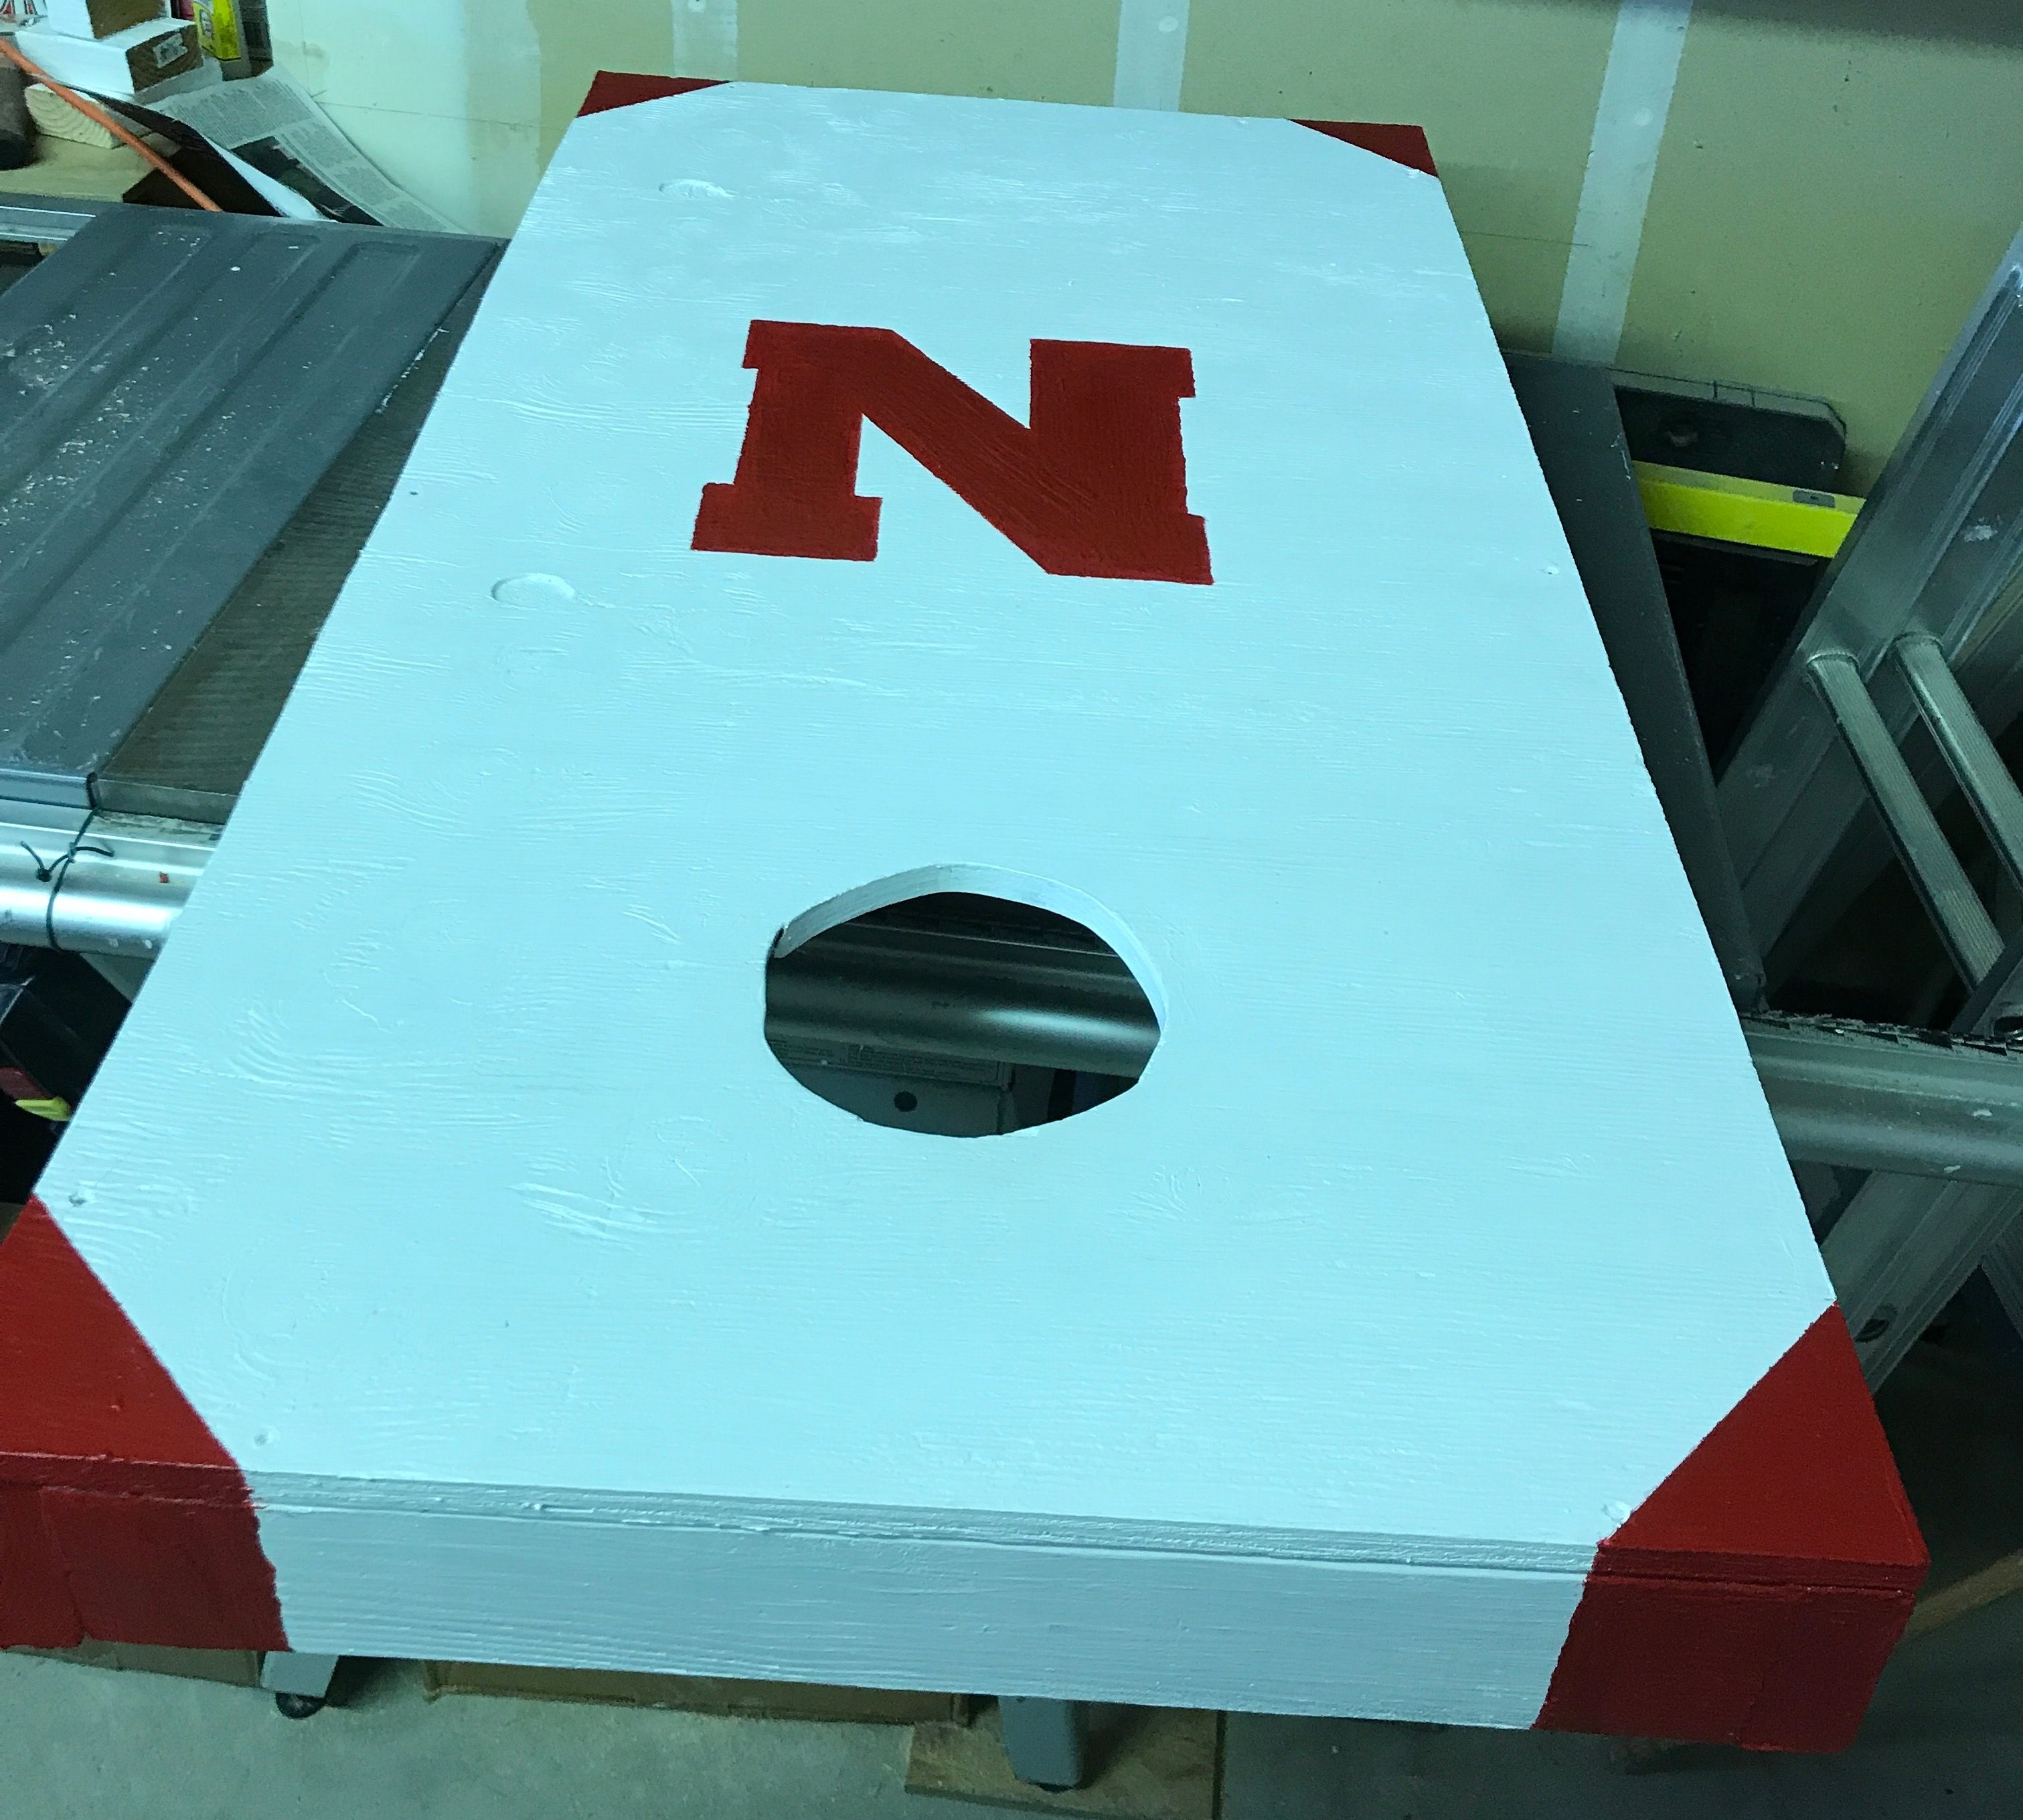 Enjoyable Husker Bean Bag Toss Game Made By Bill Huskers Toss Creativecarmelina Interior Chair Design Creativecarmelinacom